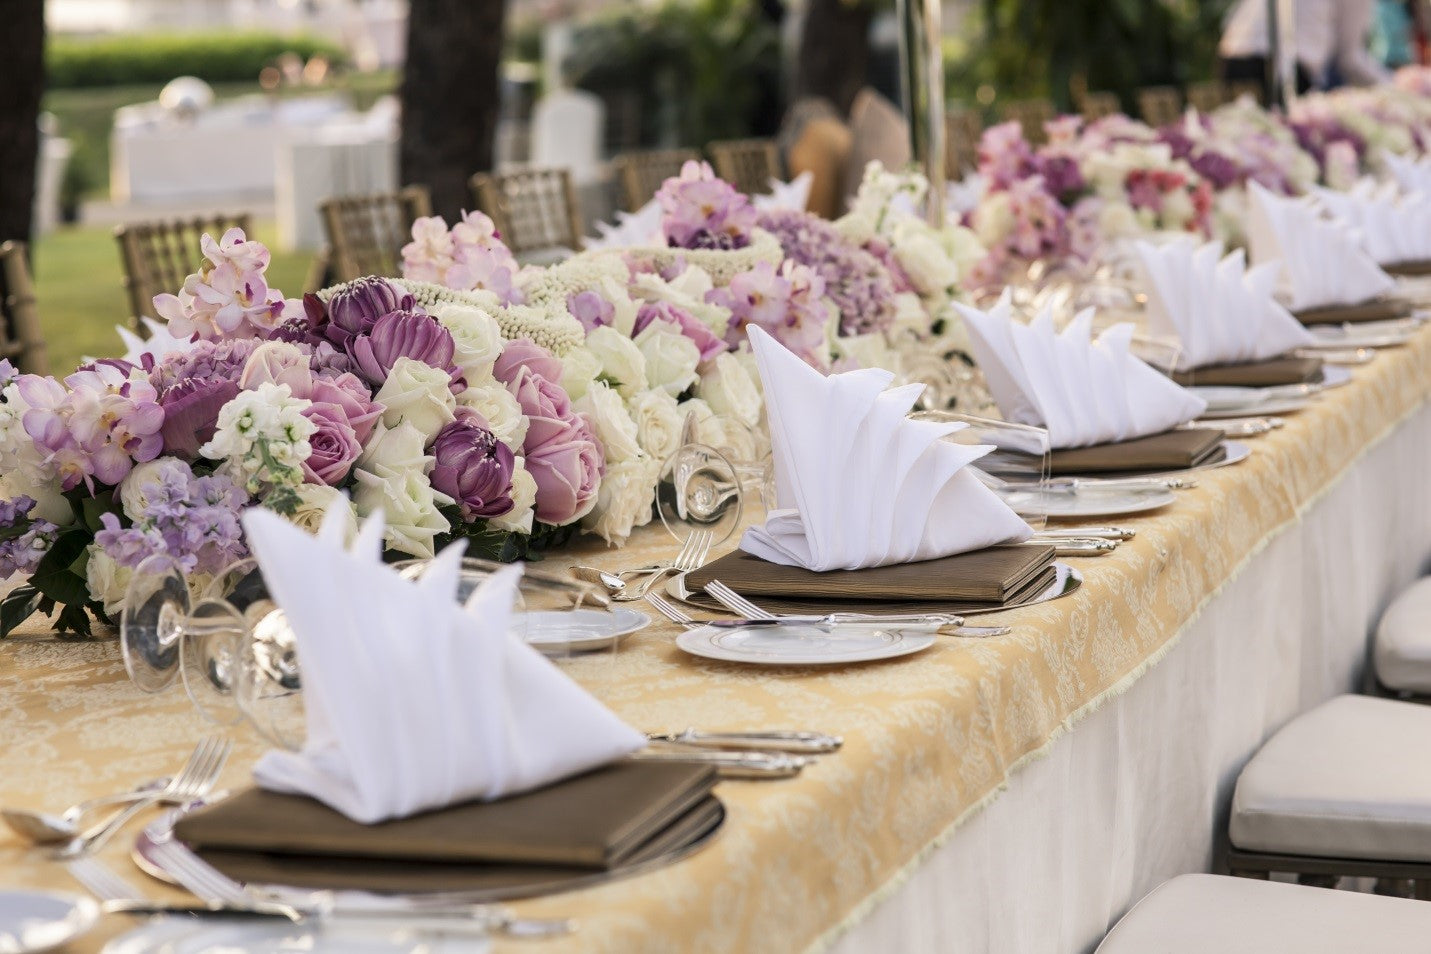 long banquet table with white tablecloth and flower centerpieces